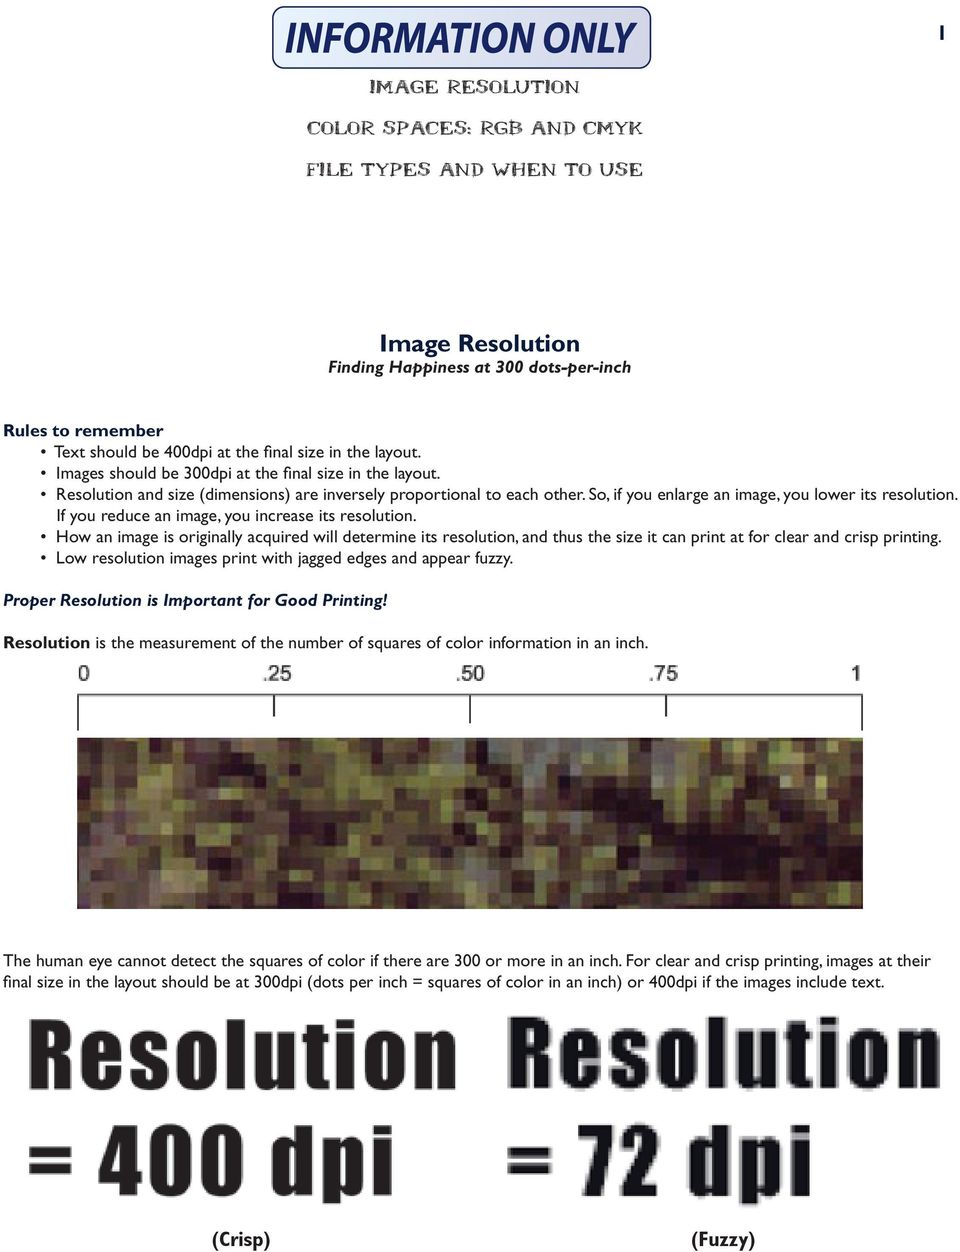 If you reduce an image, you increase its resolution. How an image is originally acquired will determine its resolution, and thus the size it can print at for clear and crisp printing.